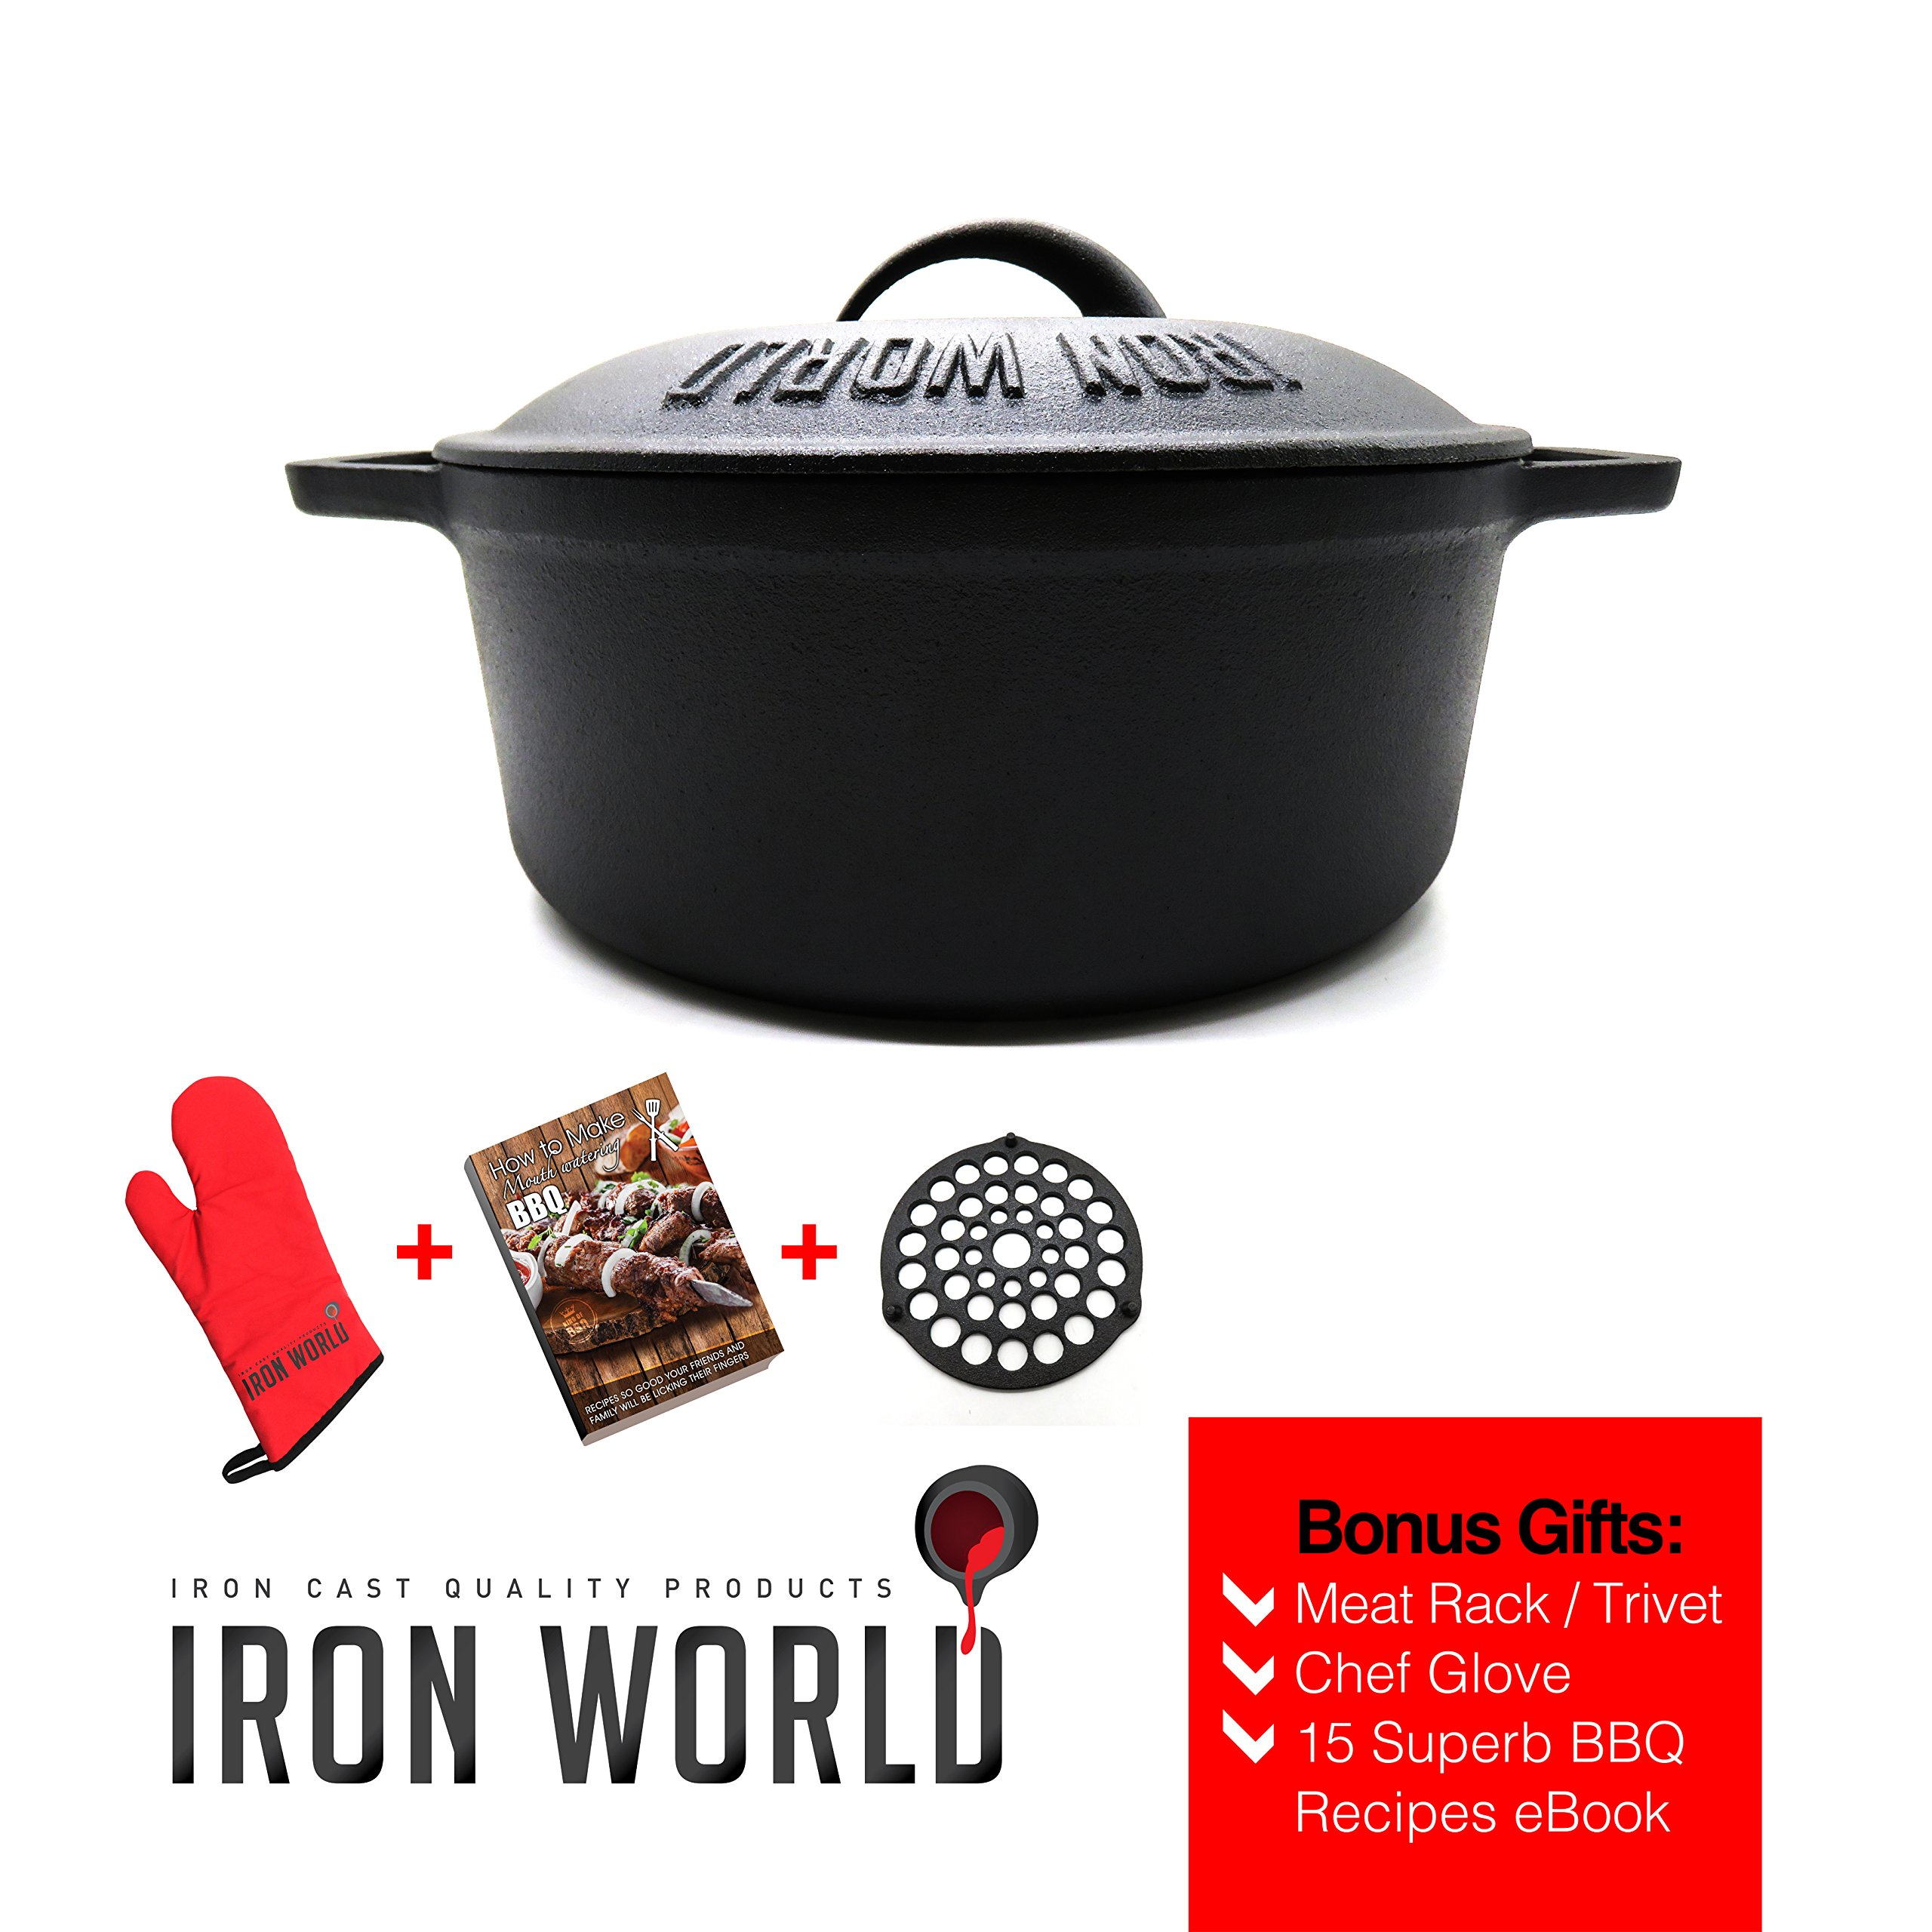 iron cast dutch oven 3.5 quart by iron world - pot with lid pre seasoned and nonstick. iron cookware great for cooking baking frying soup casserole camping. heavy duty rust proof . bonus meat rack